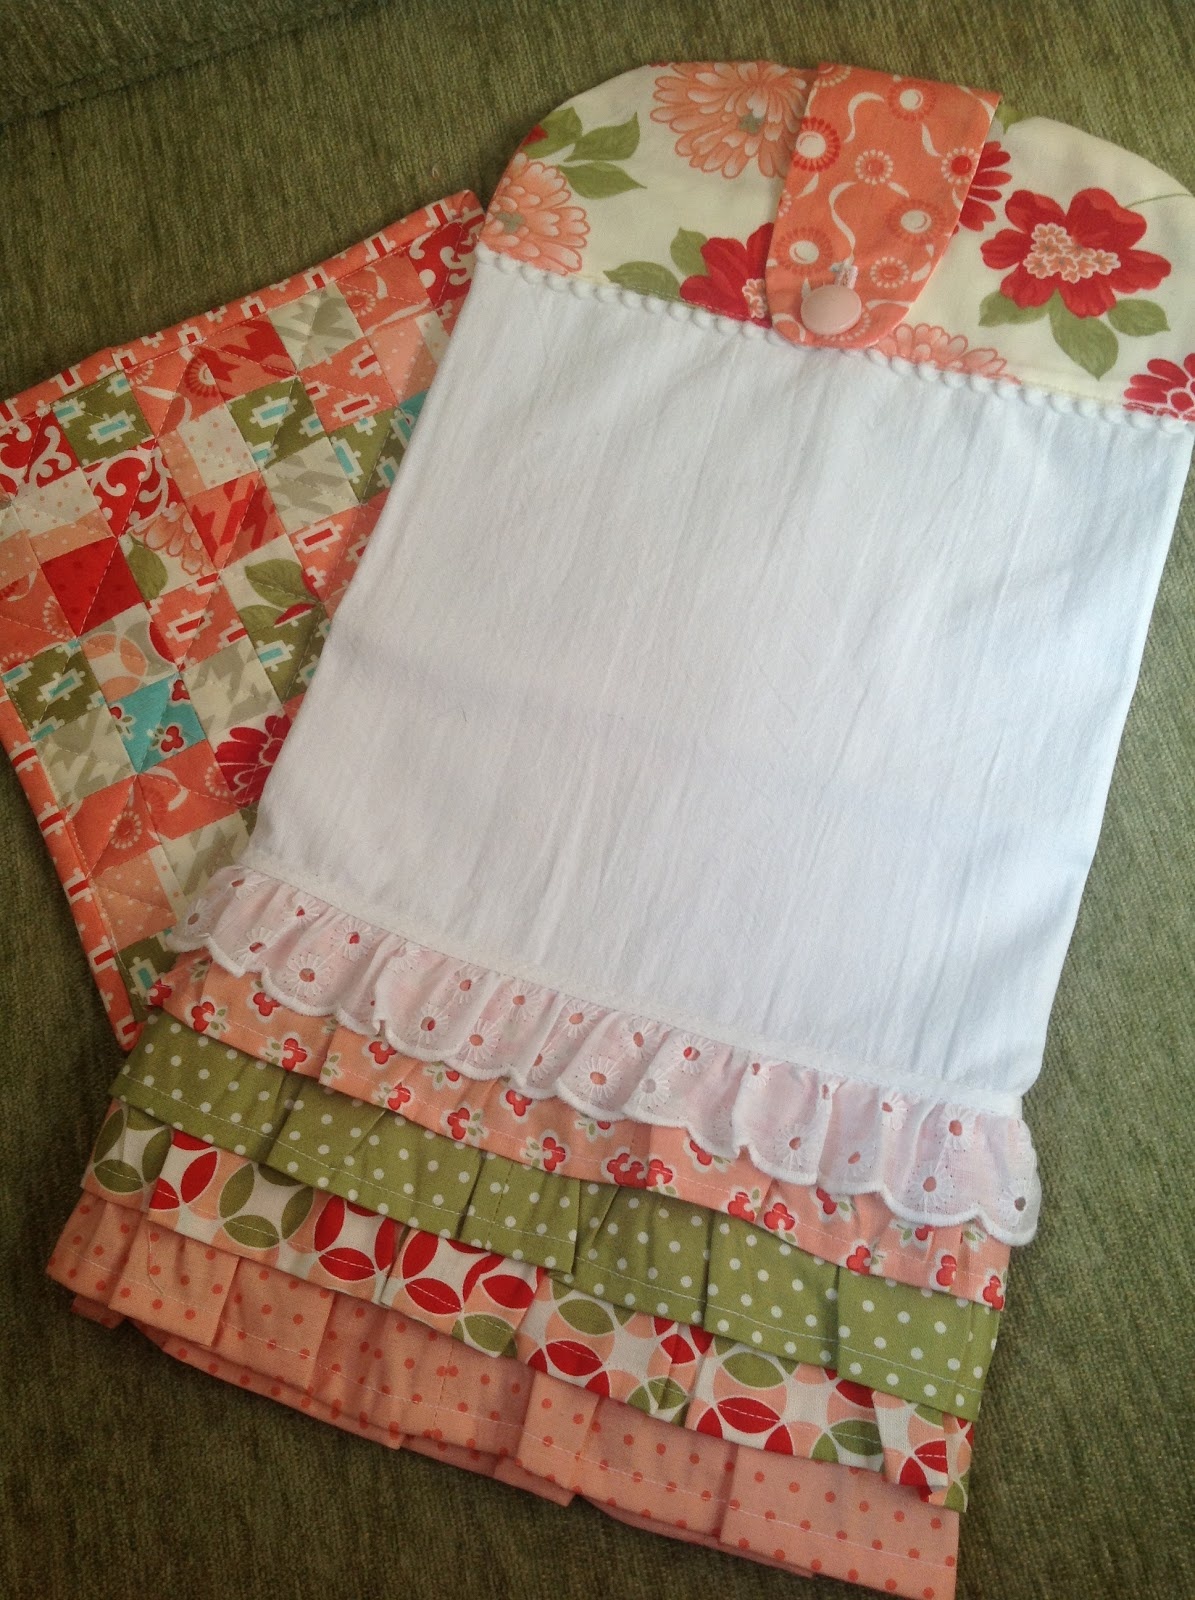 Kitchen Towel and Potholder Sets Are Great Gifts